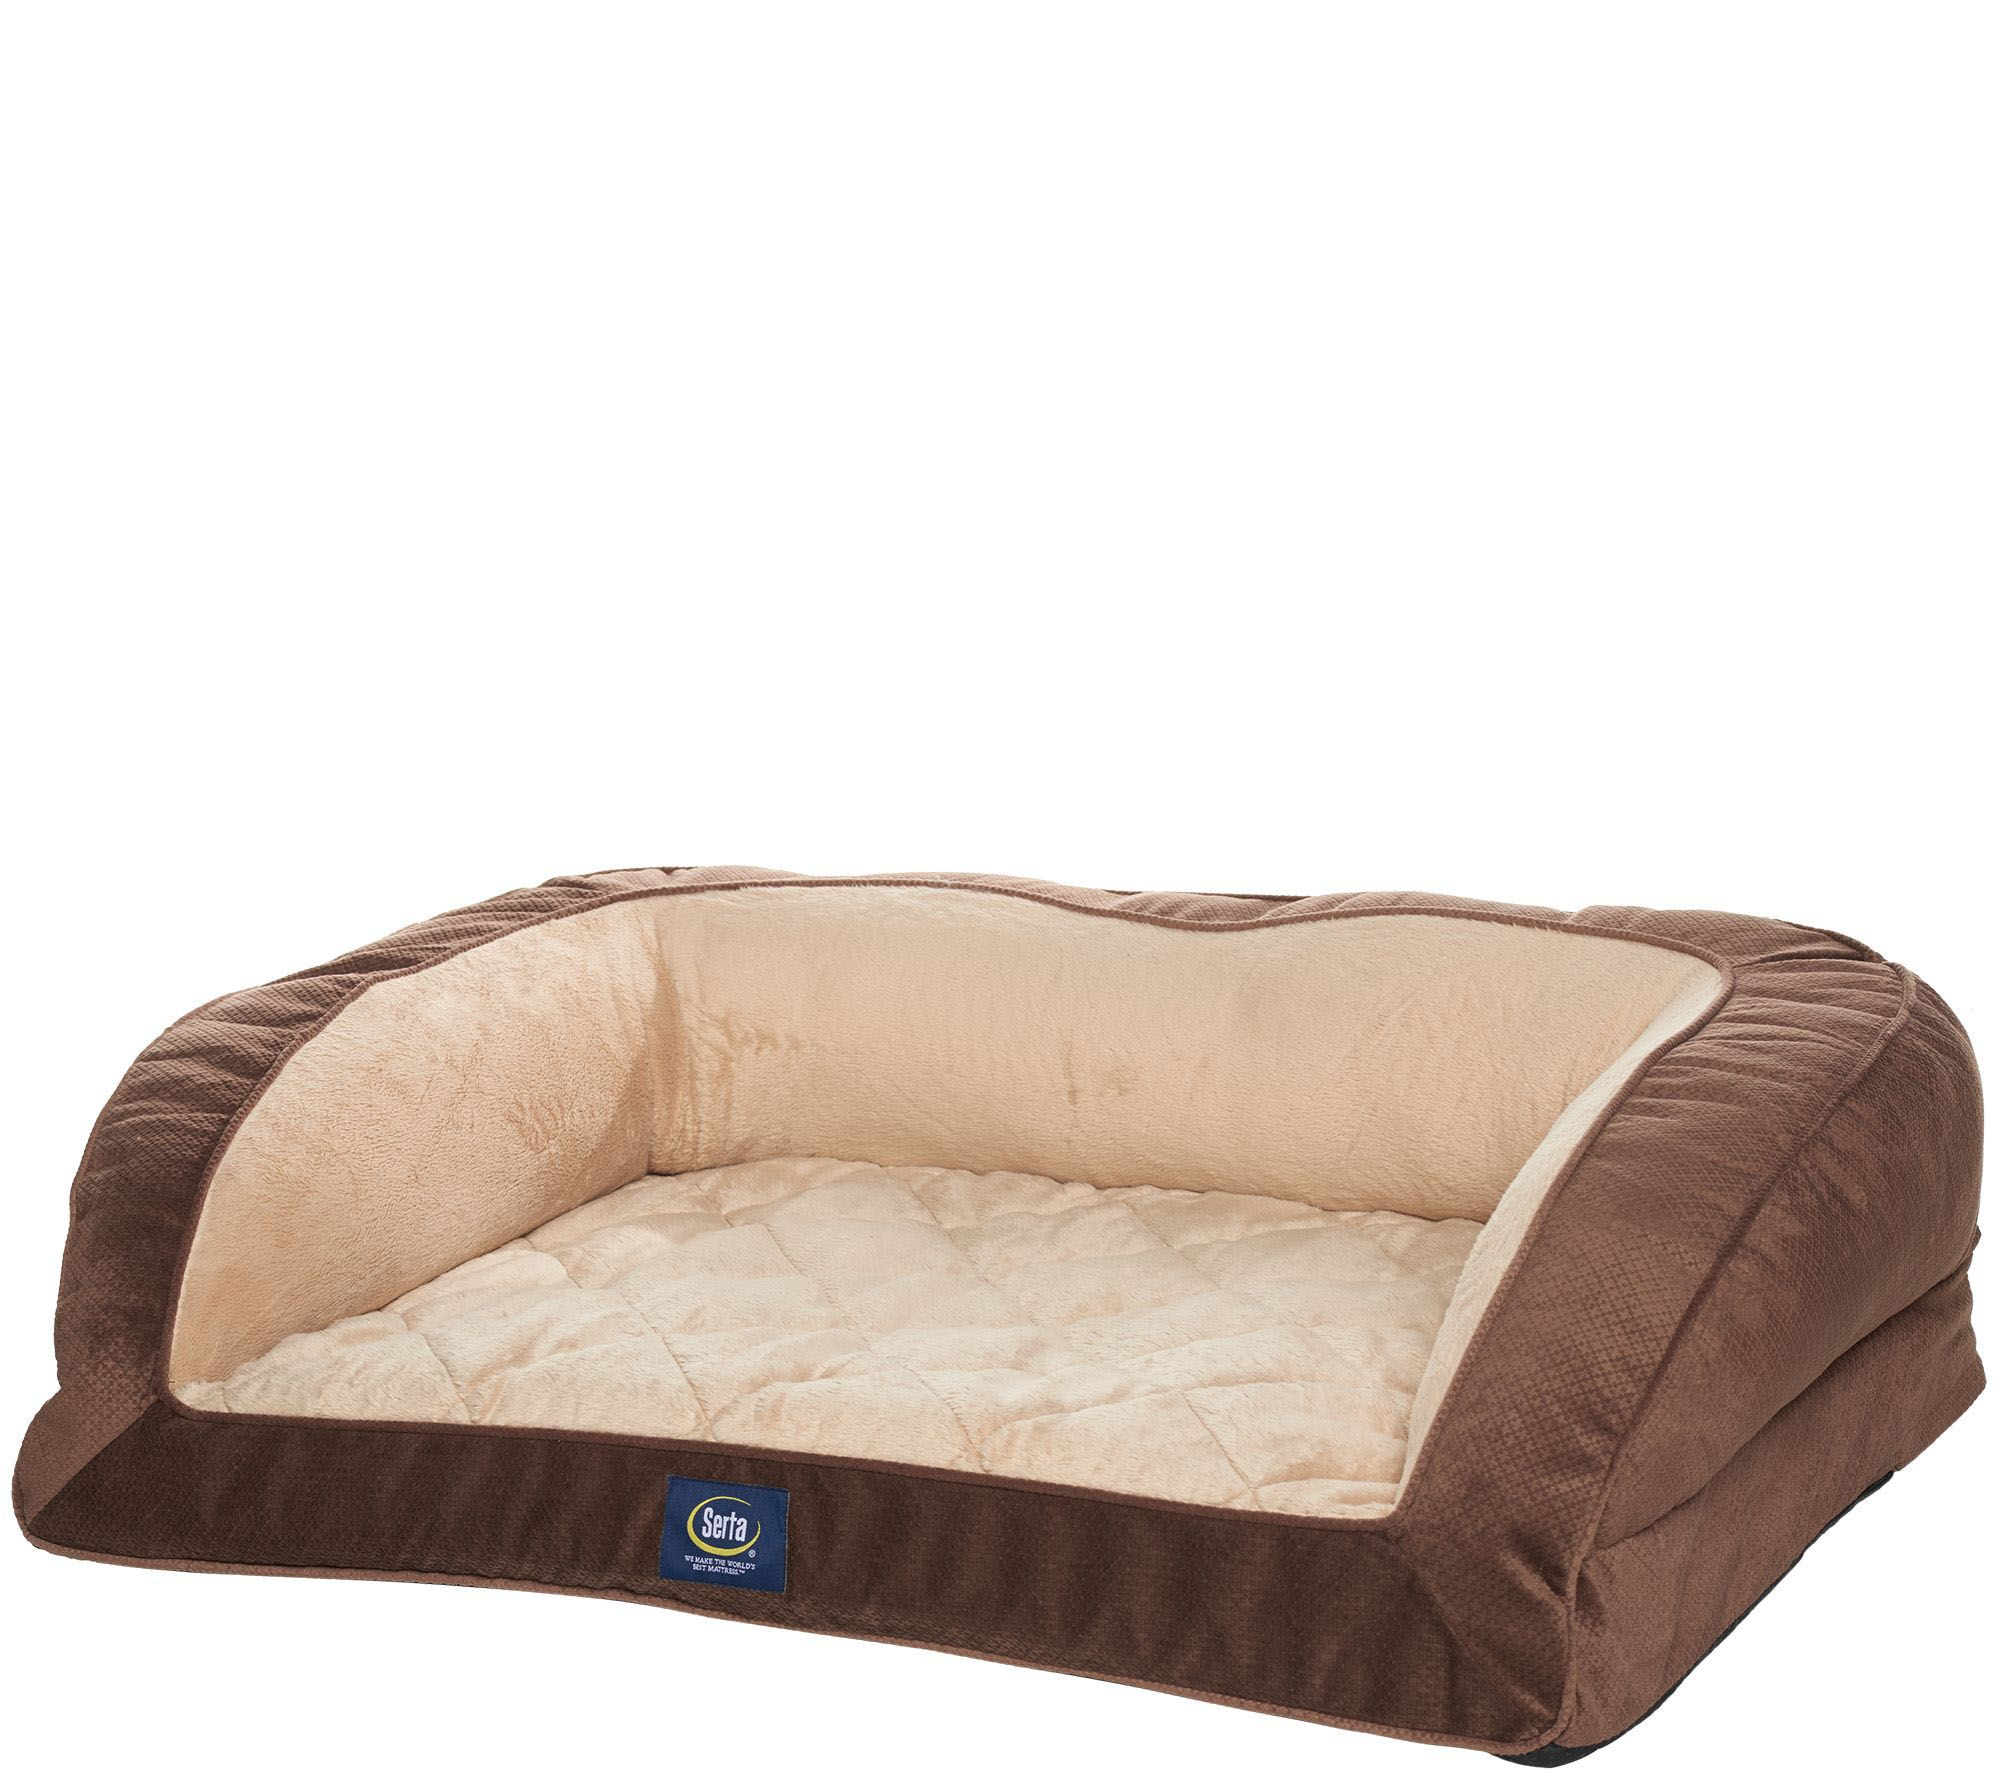 quilted foam serta dog orthopedic photo memory bed size pet p large